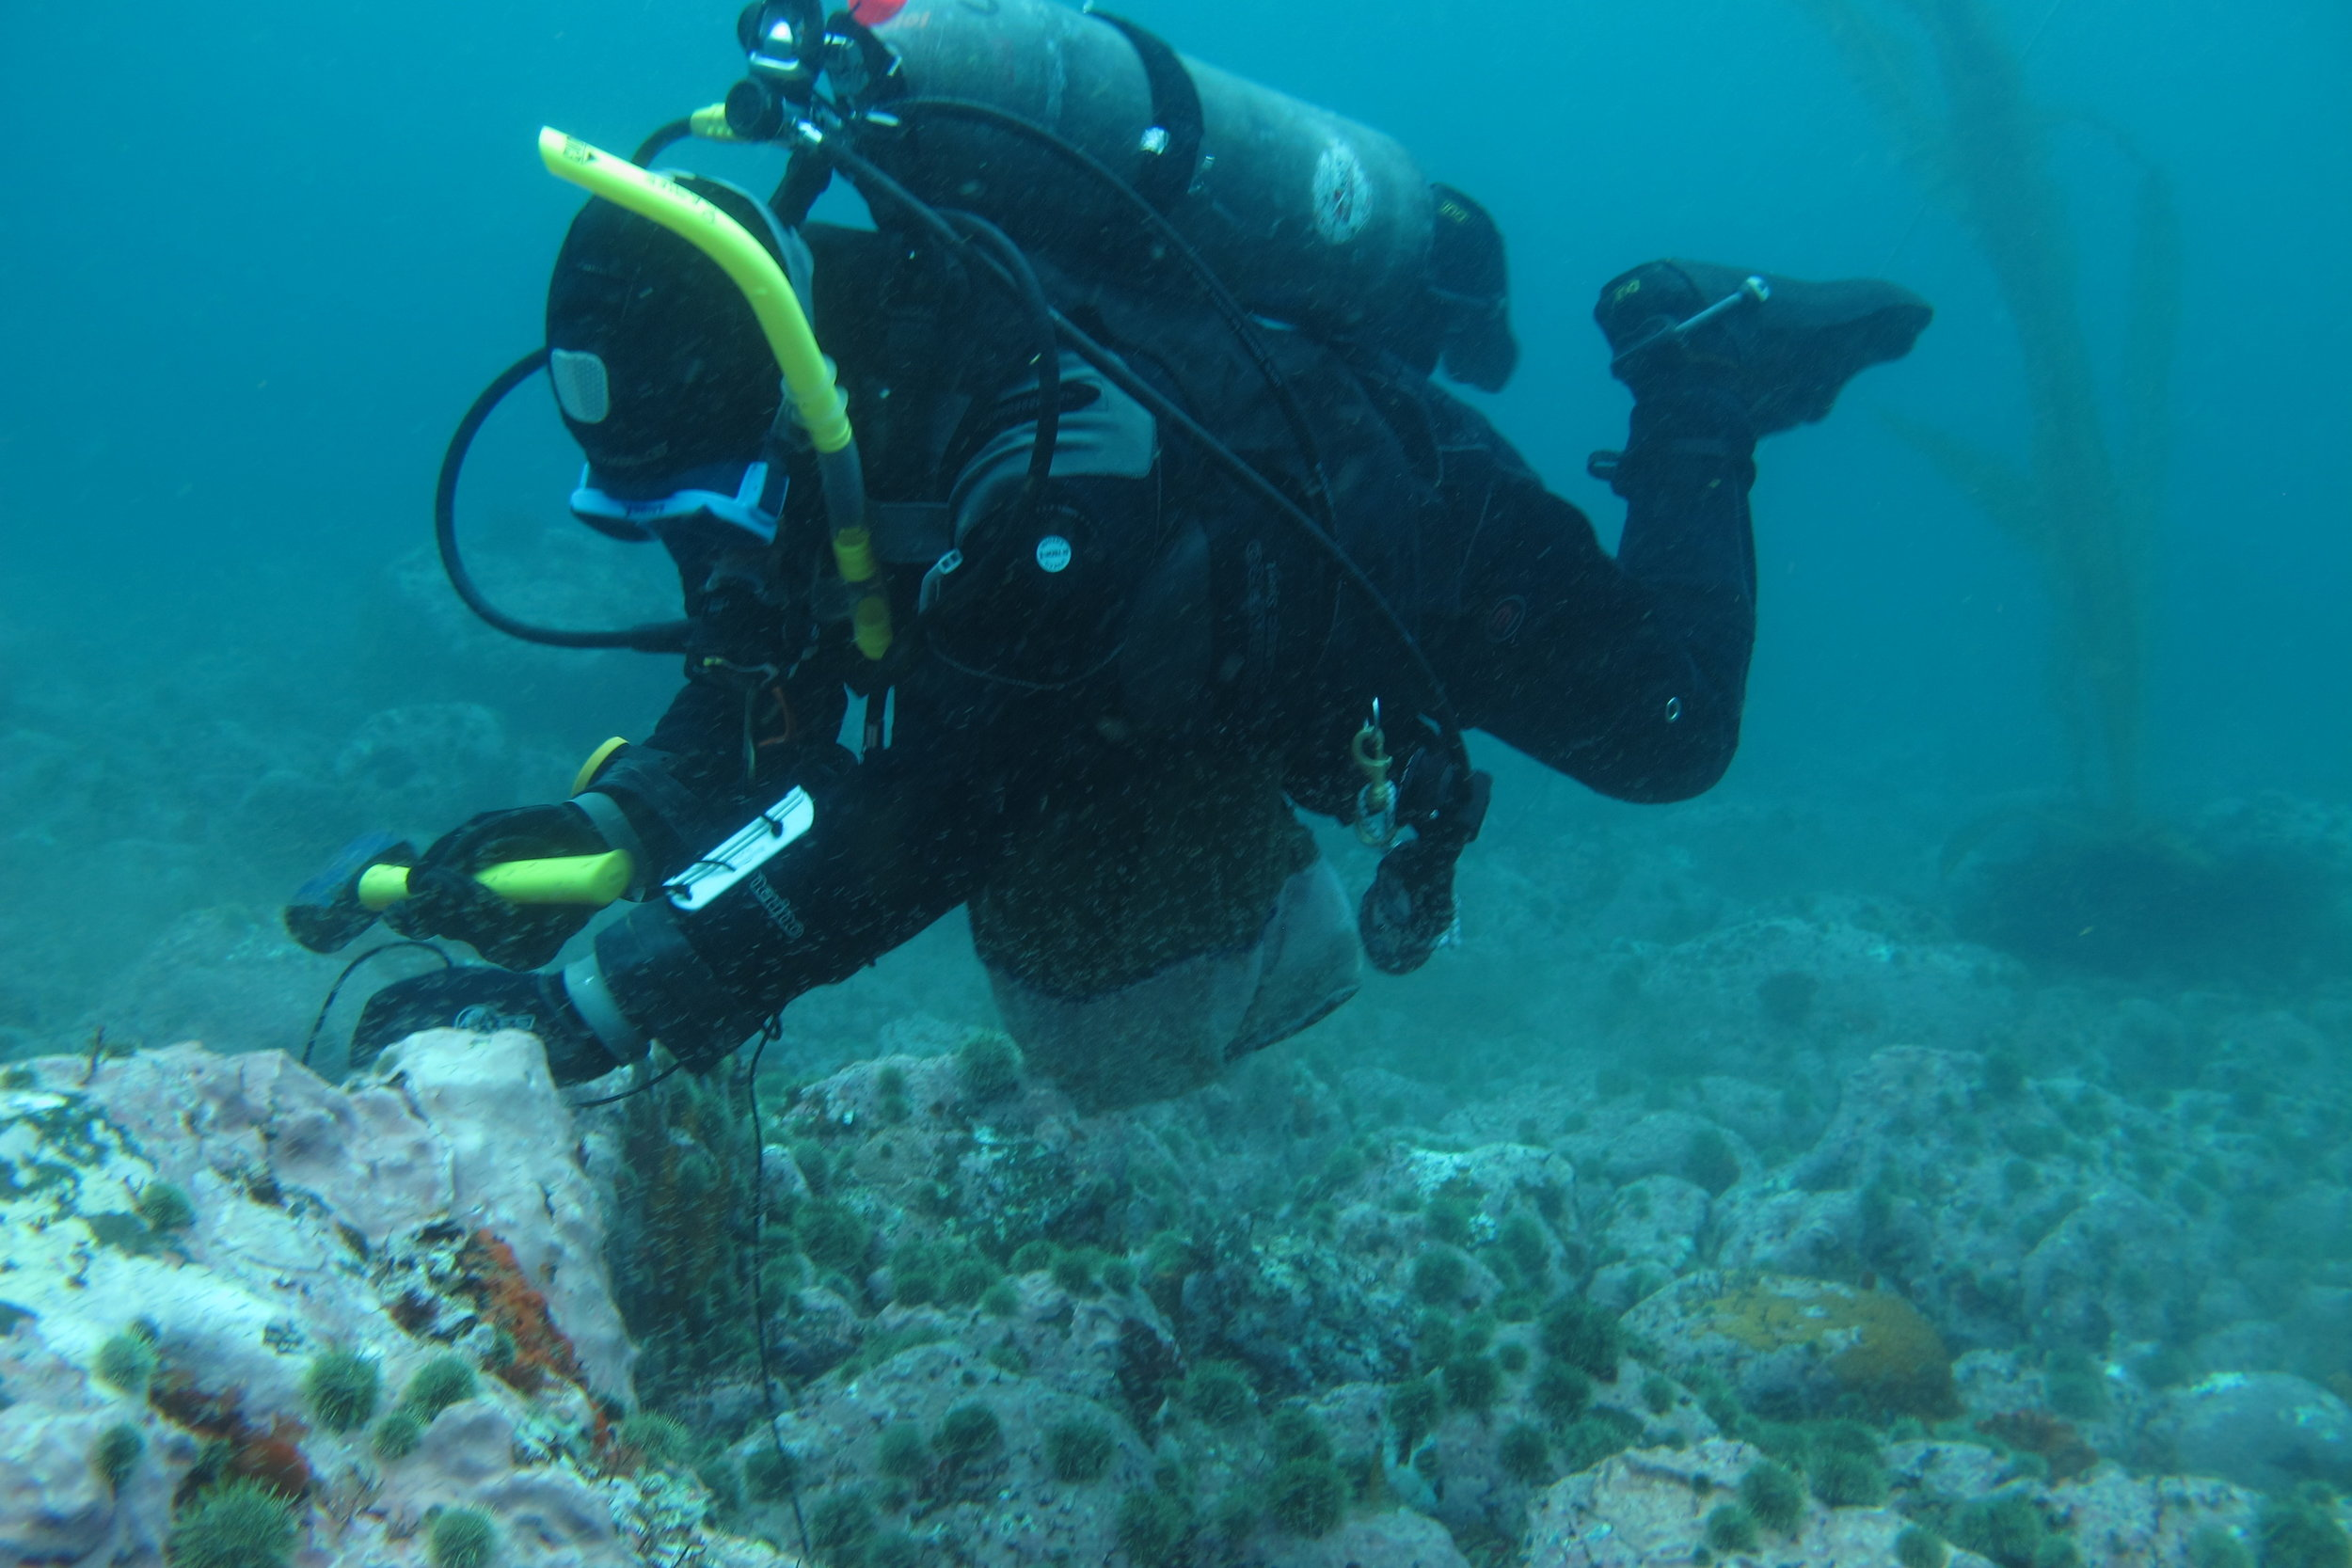 University of Maine scientist Dr. Douglas Rasher collects samples of the reef-building alga Clathromorphum nereostratum for laboratory analysis. Photo: Alexandra Ravelo